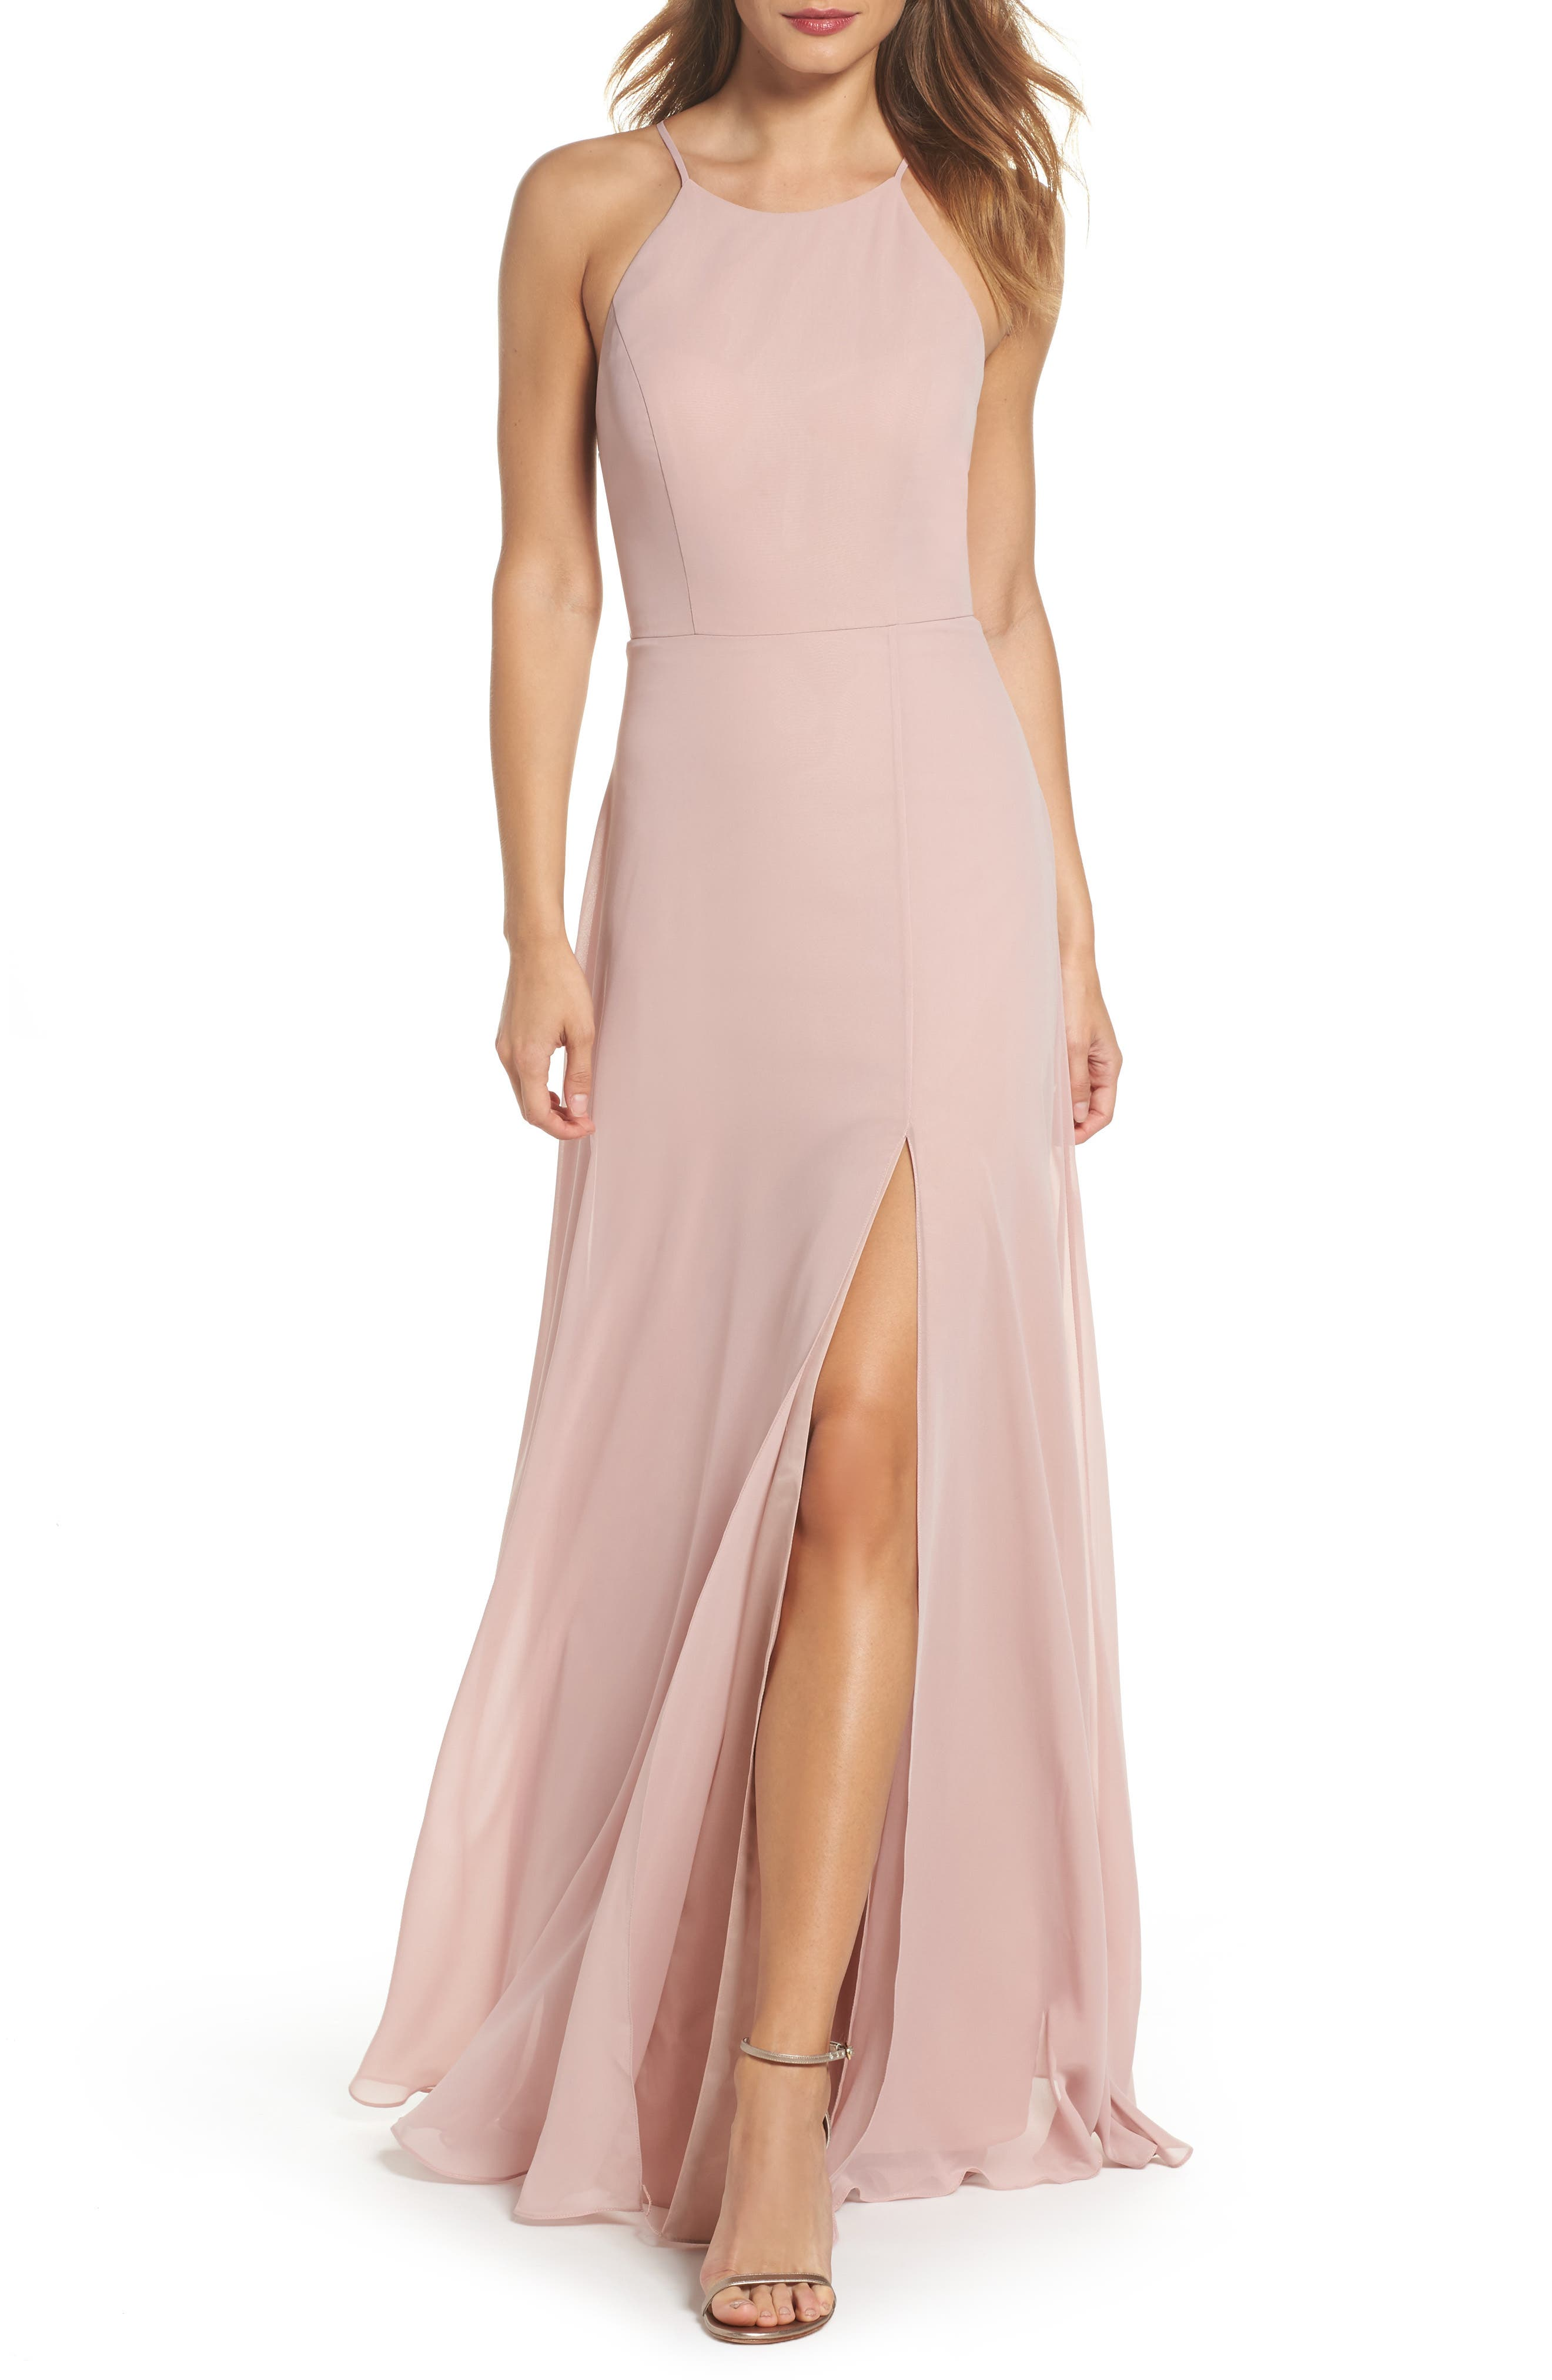 Kayla A-Line Halter Gown in Whipped Apricot